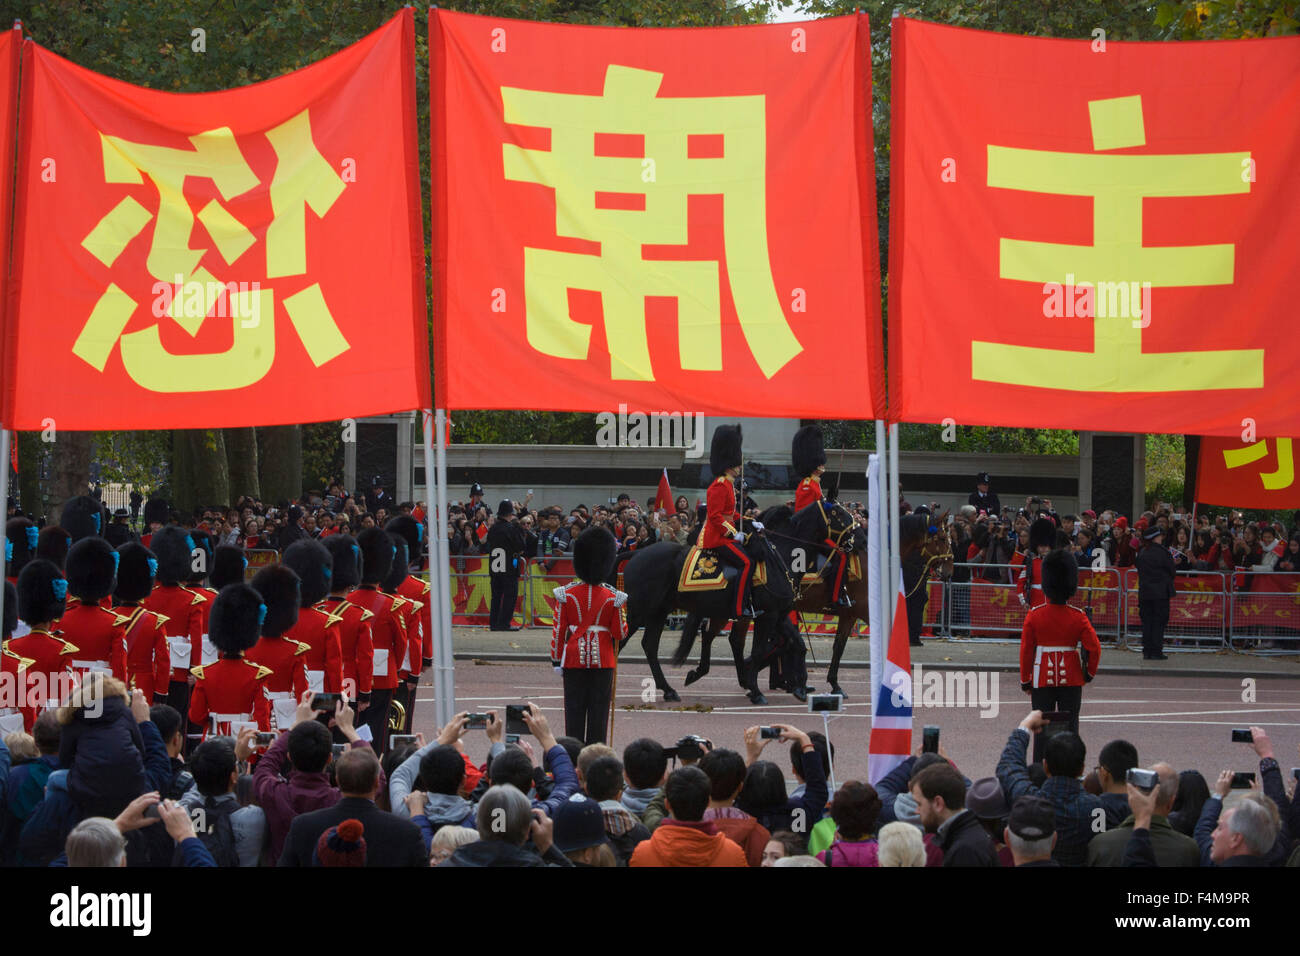 London, 20th October 2015. As crowds of supporters and protesters line the Mall in central London, Chinese leader - Stock Image